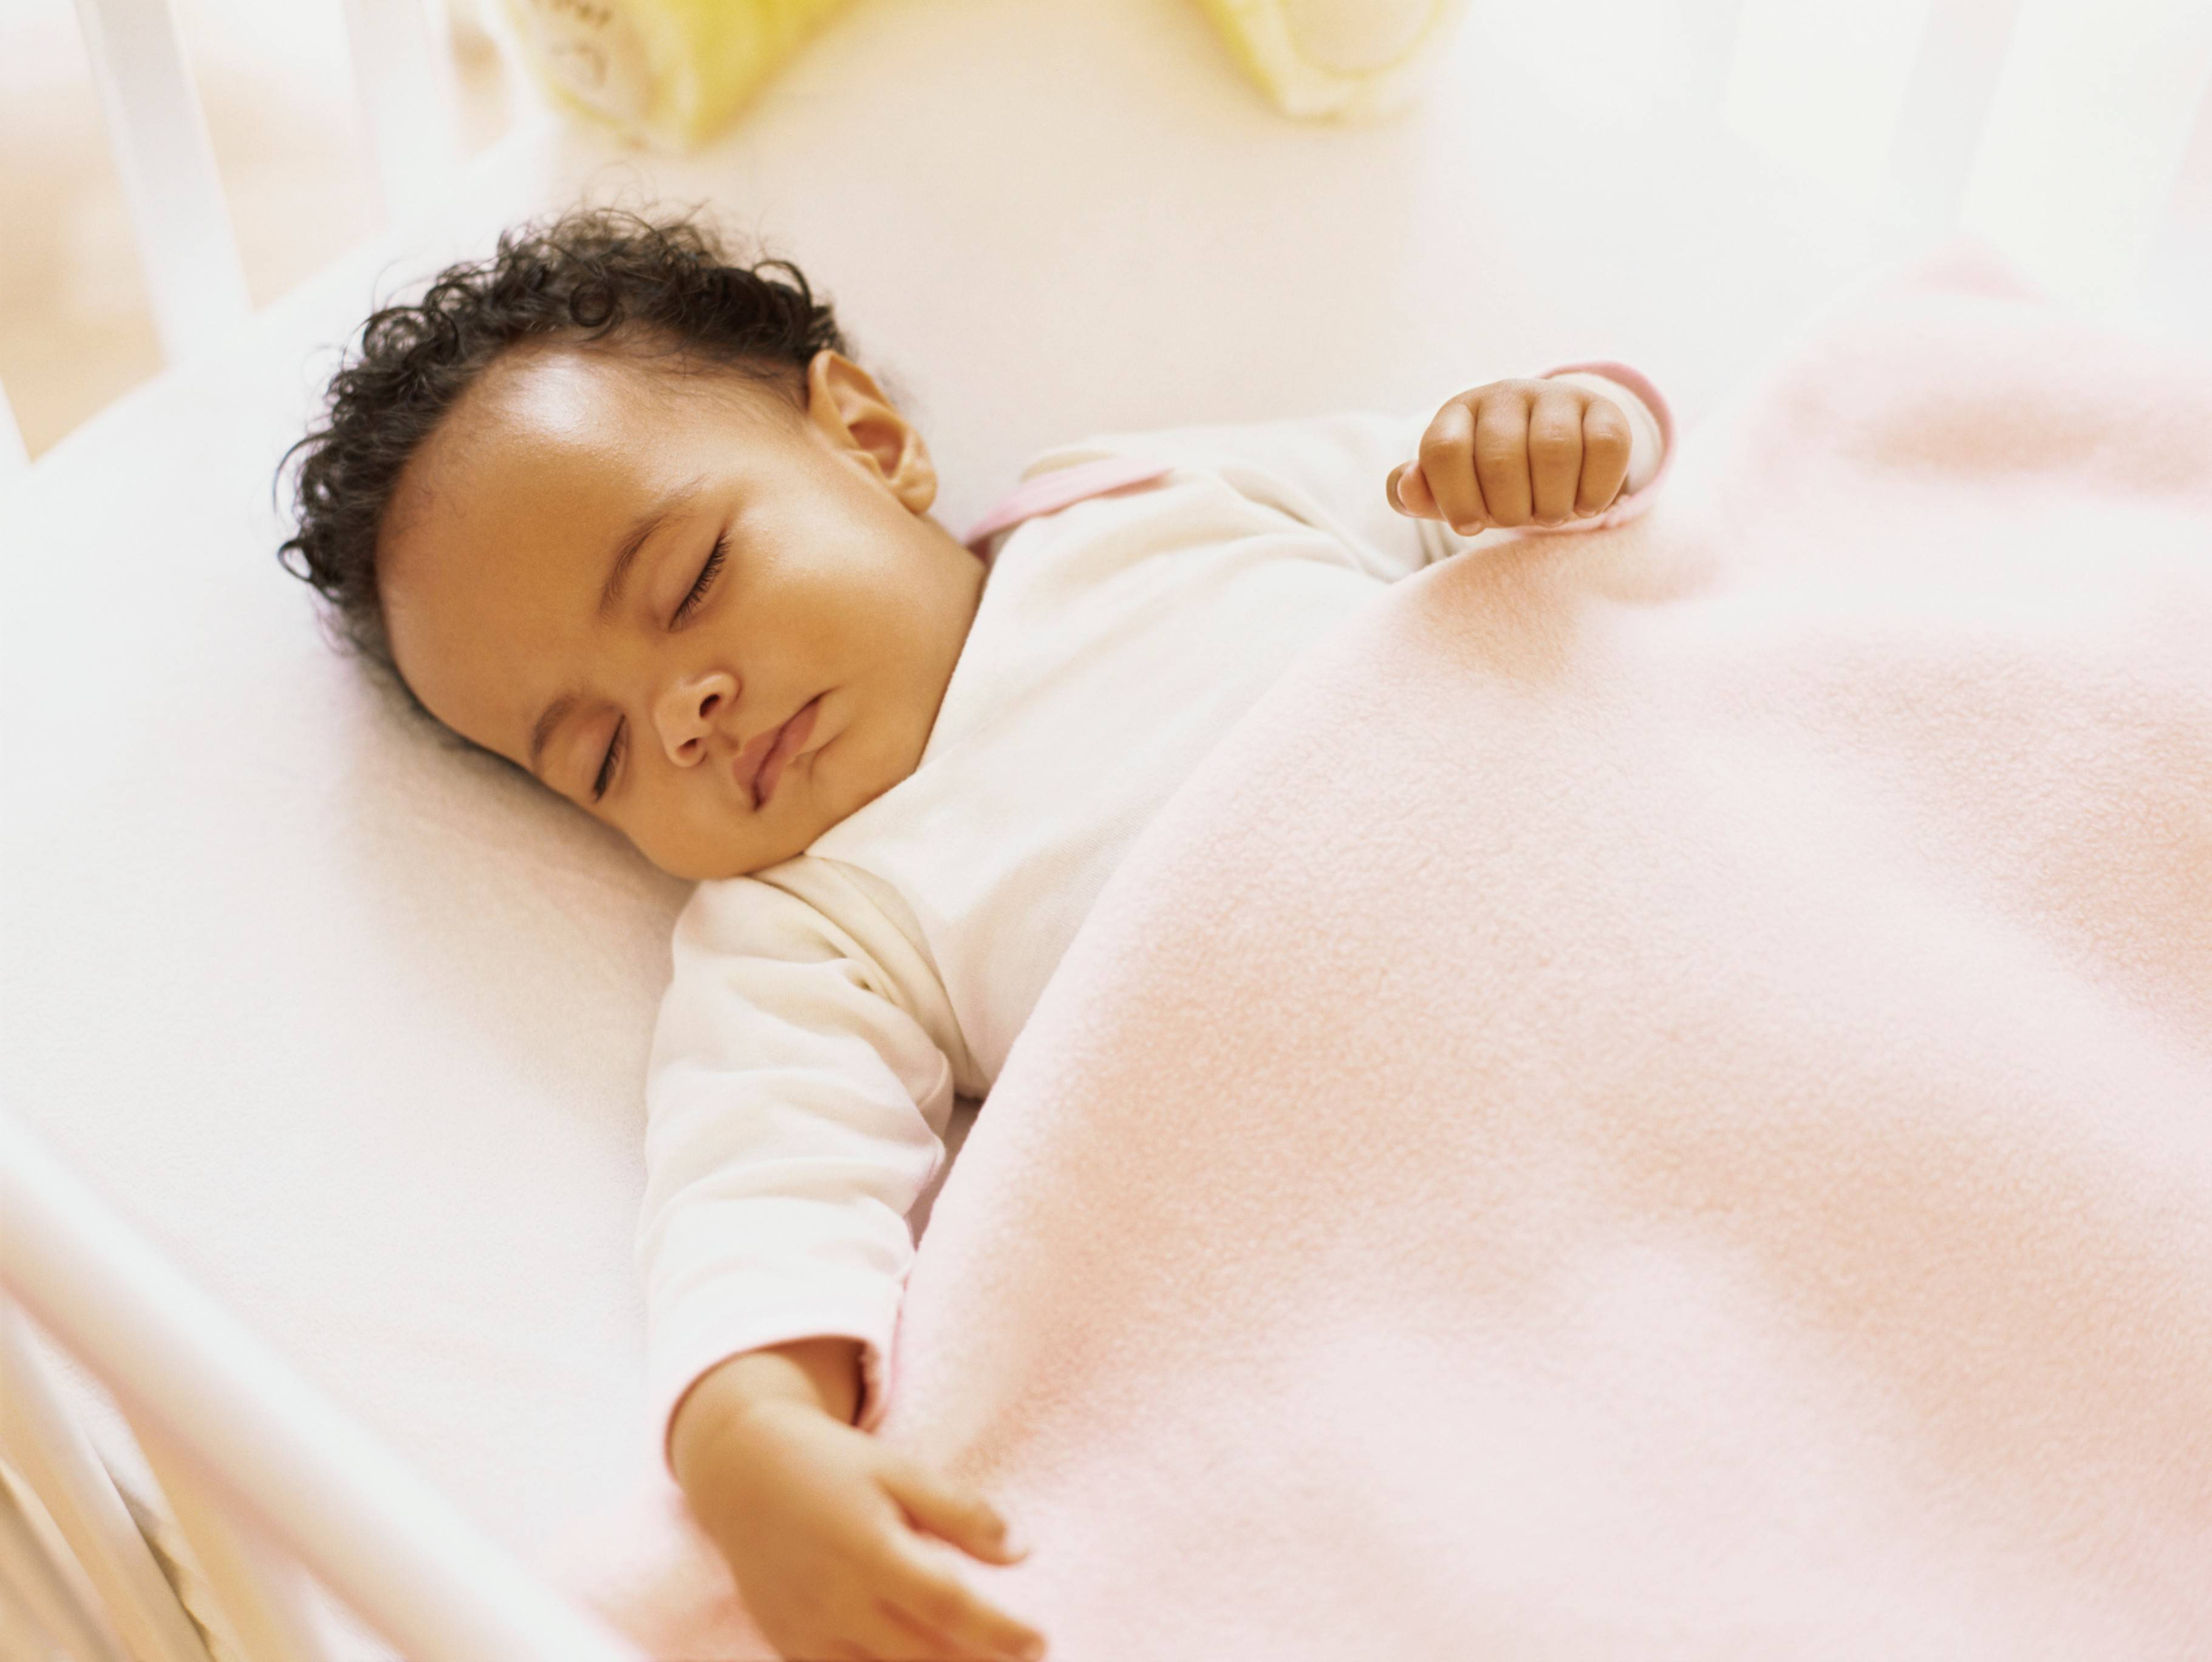 how to make infant sleep at night